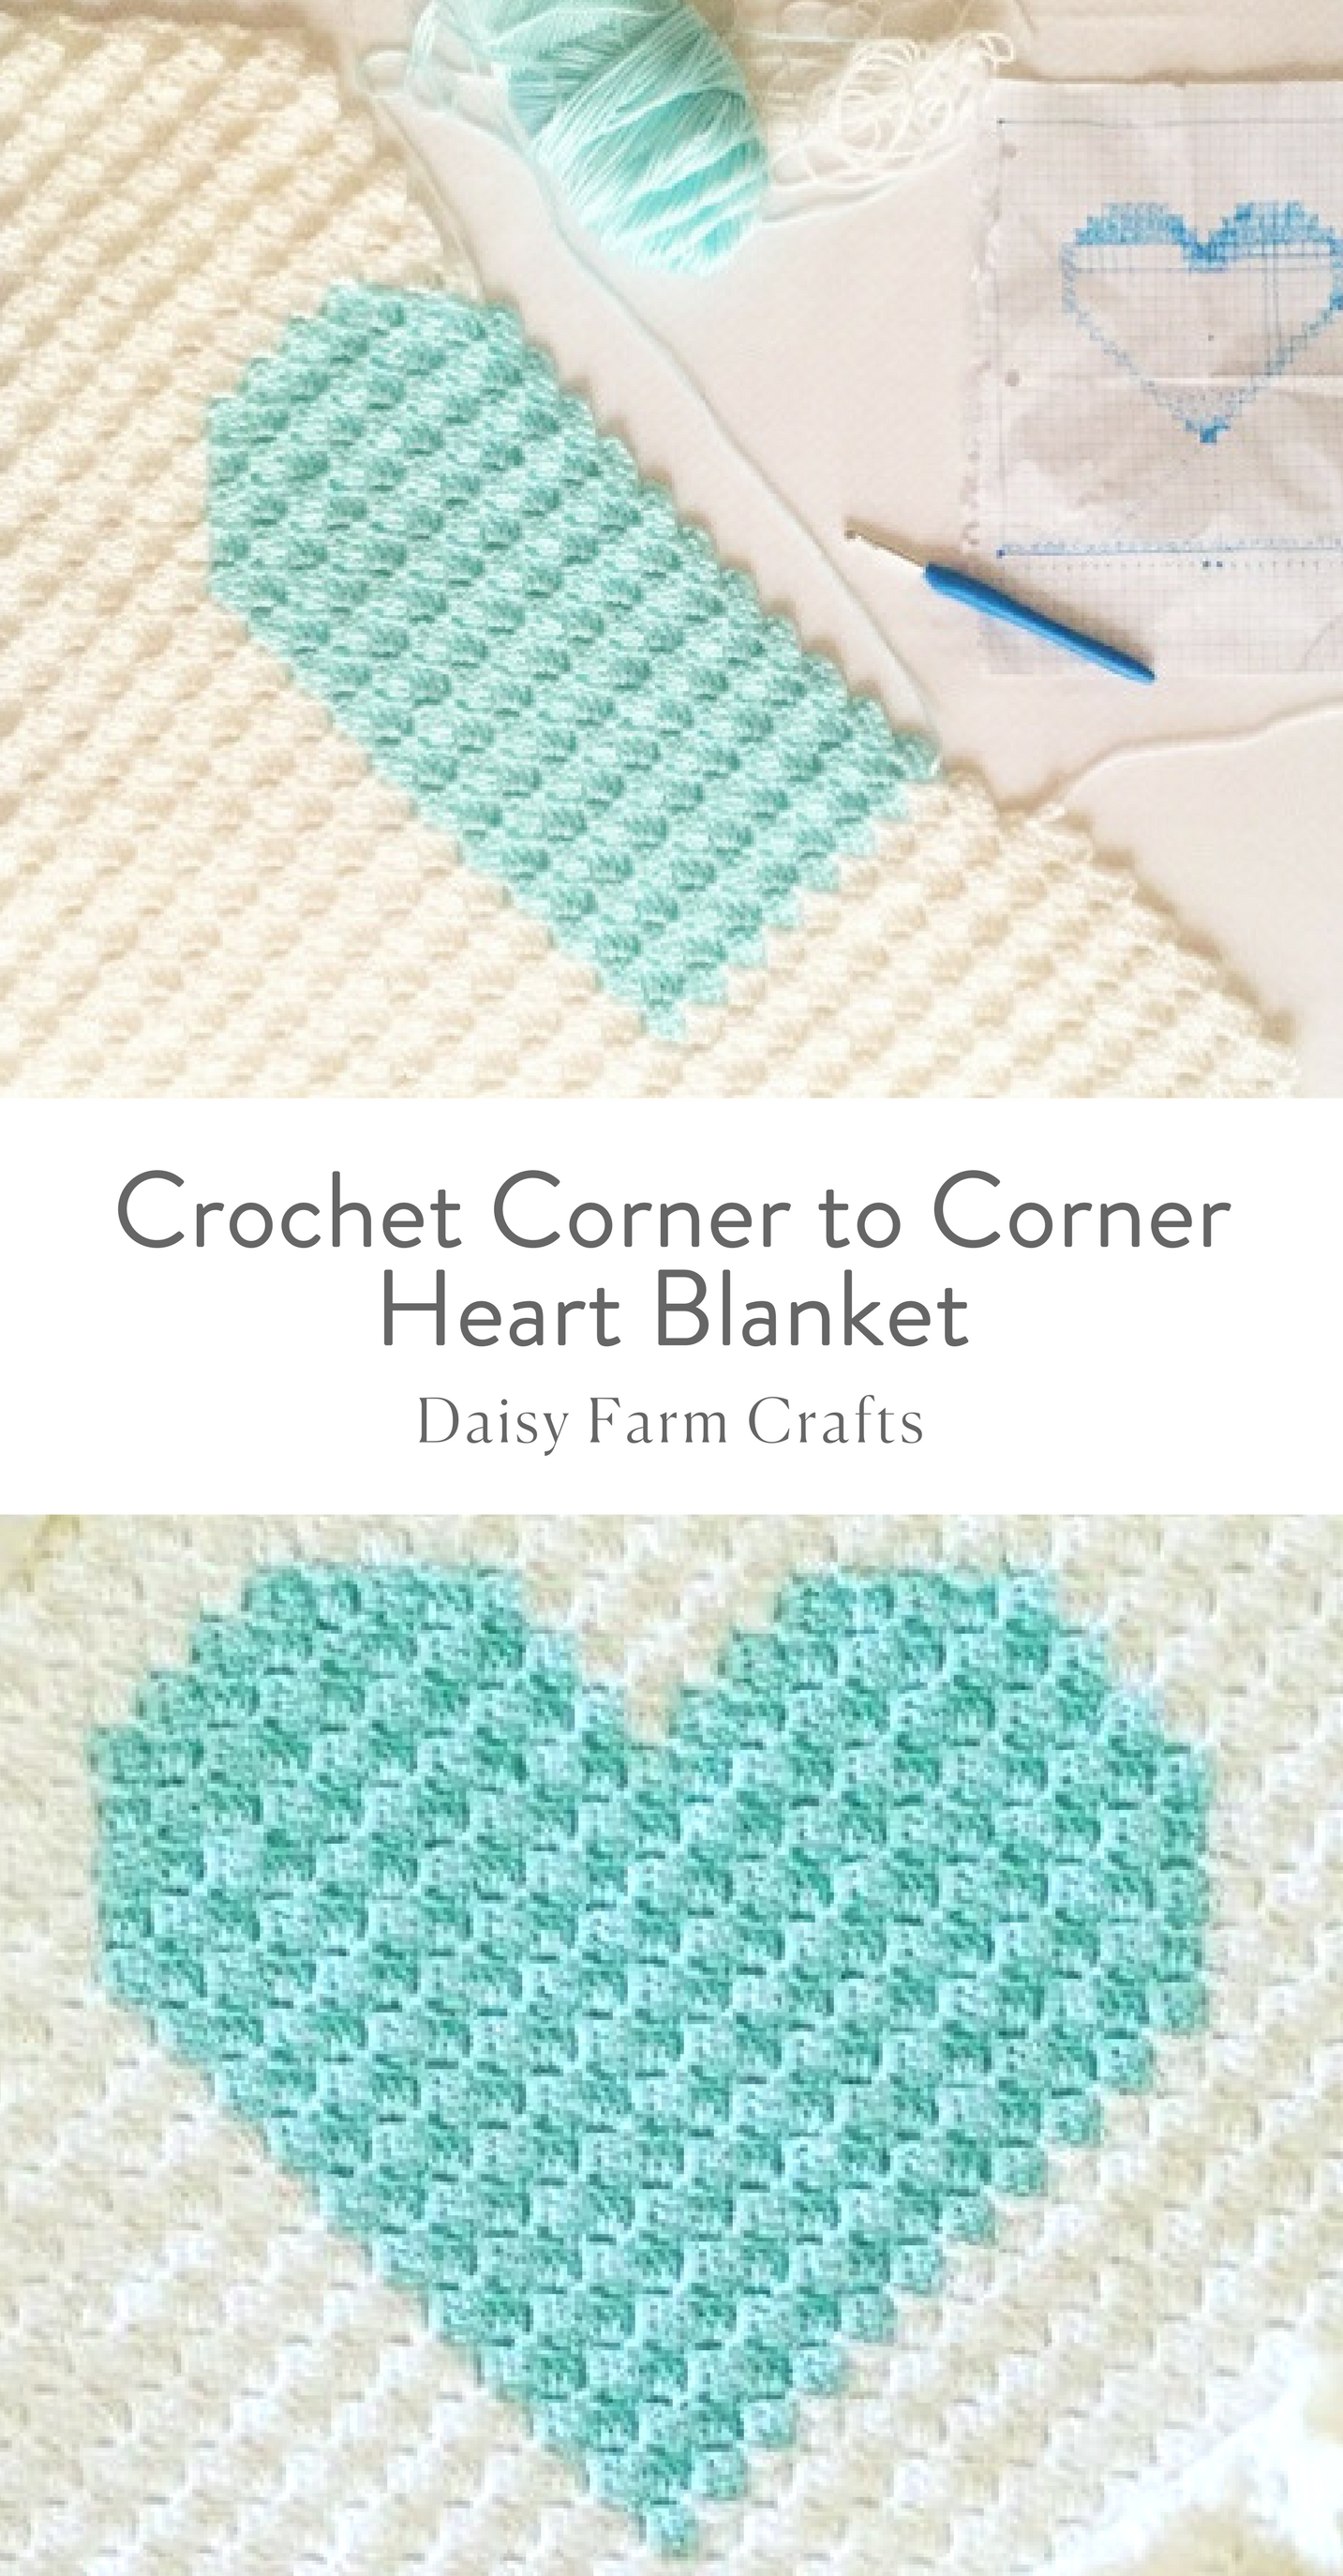 Free Pattern - Crochet Corner to Corner Heart Blanket | Crochet ...